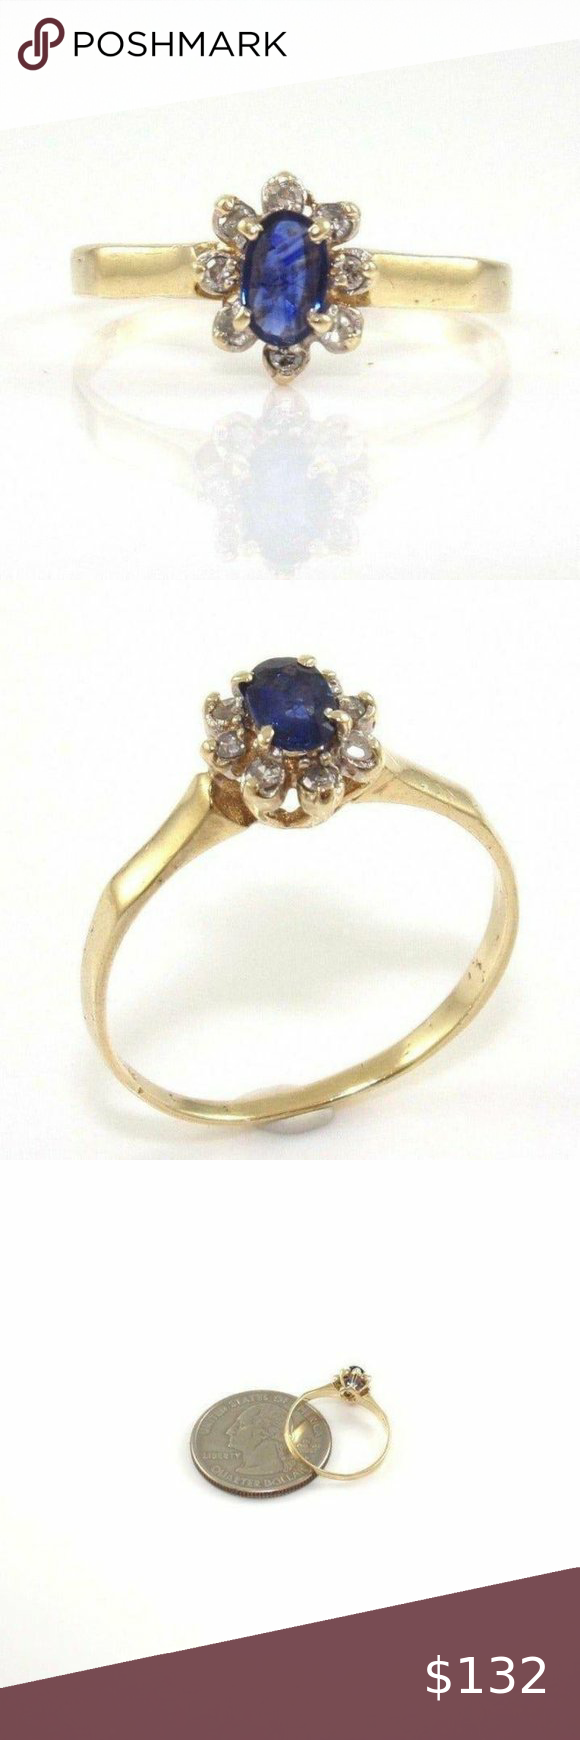 Solid 10k Gold Sapphire Diamond Ring 6 5 In 2020 Sapphire Diamond Ring Womens Jewelry Rings Sapphire Diamond